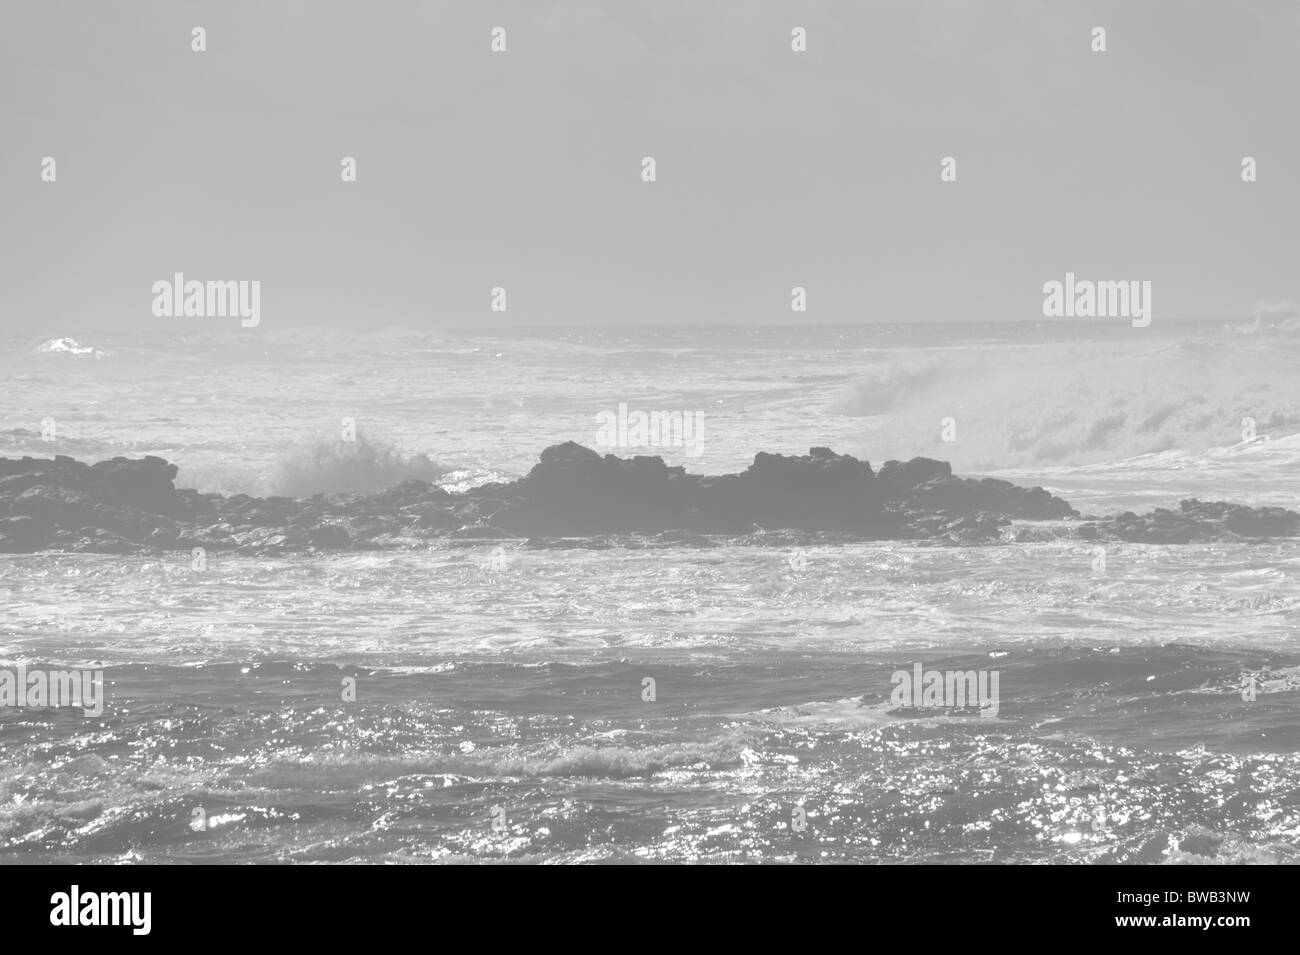 Fuerteventura, Canary Islands - shore and waves. Misty faint background image. - Stock Image